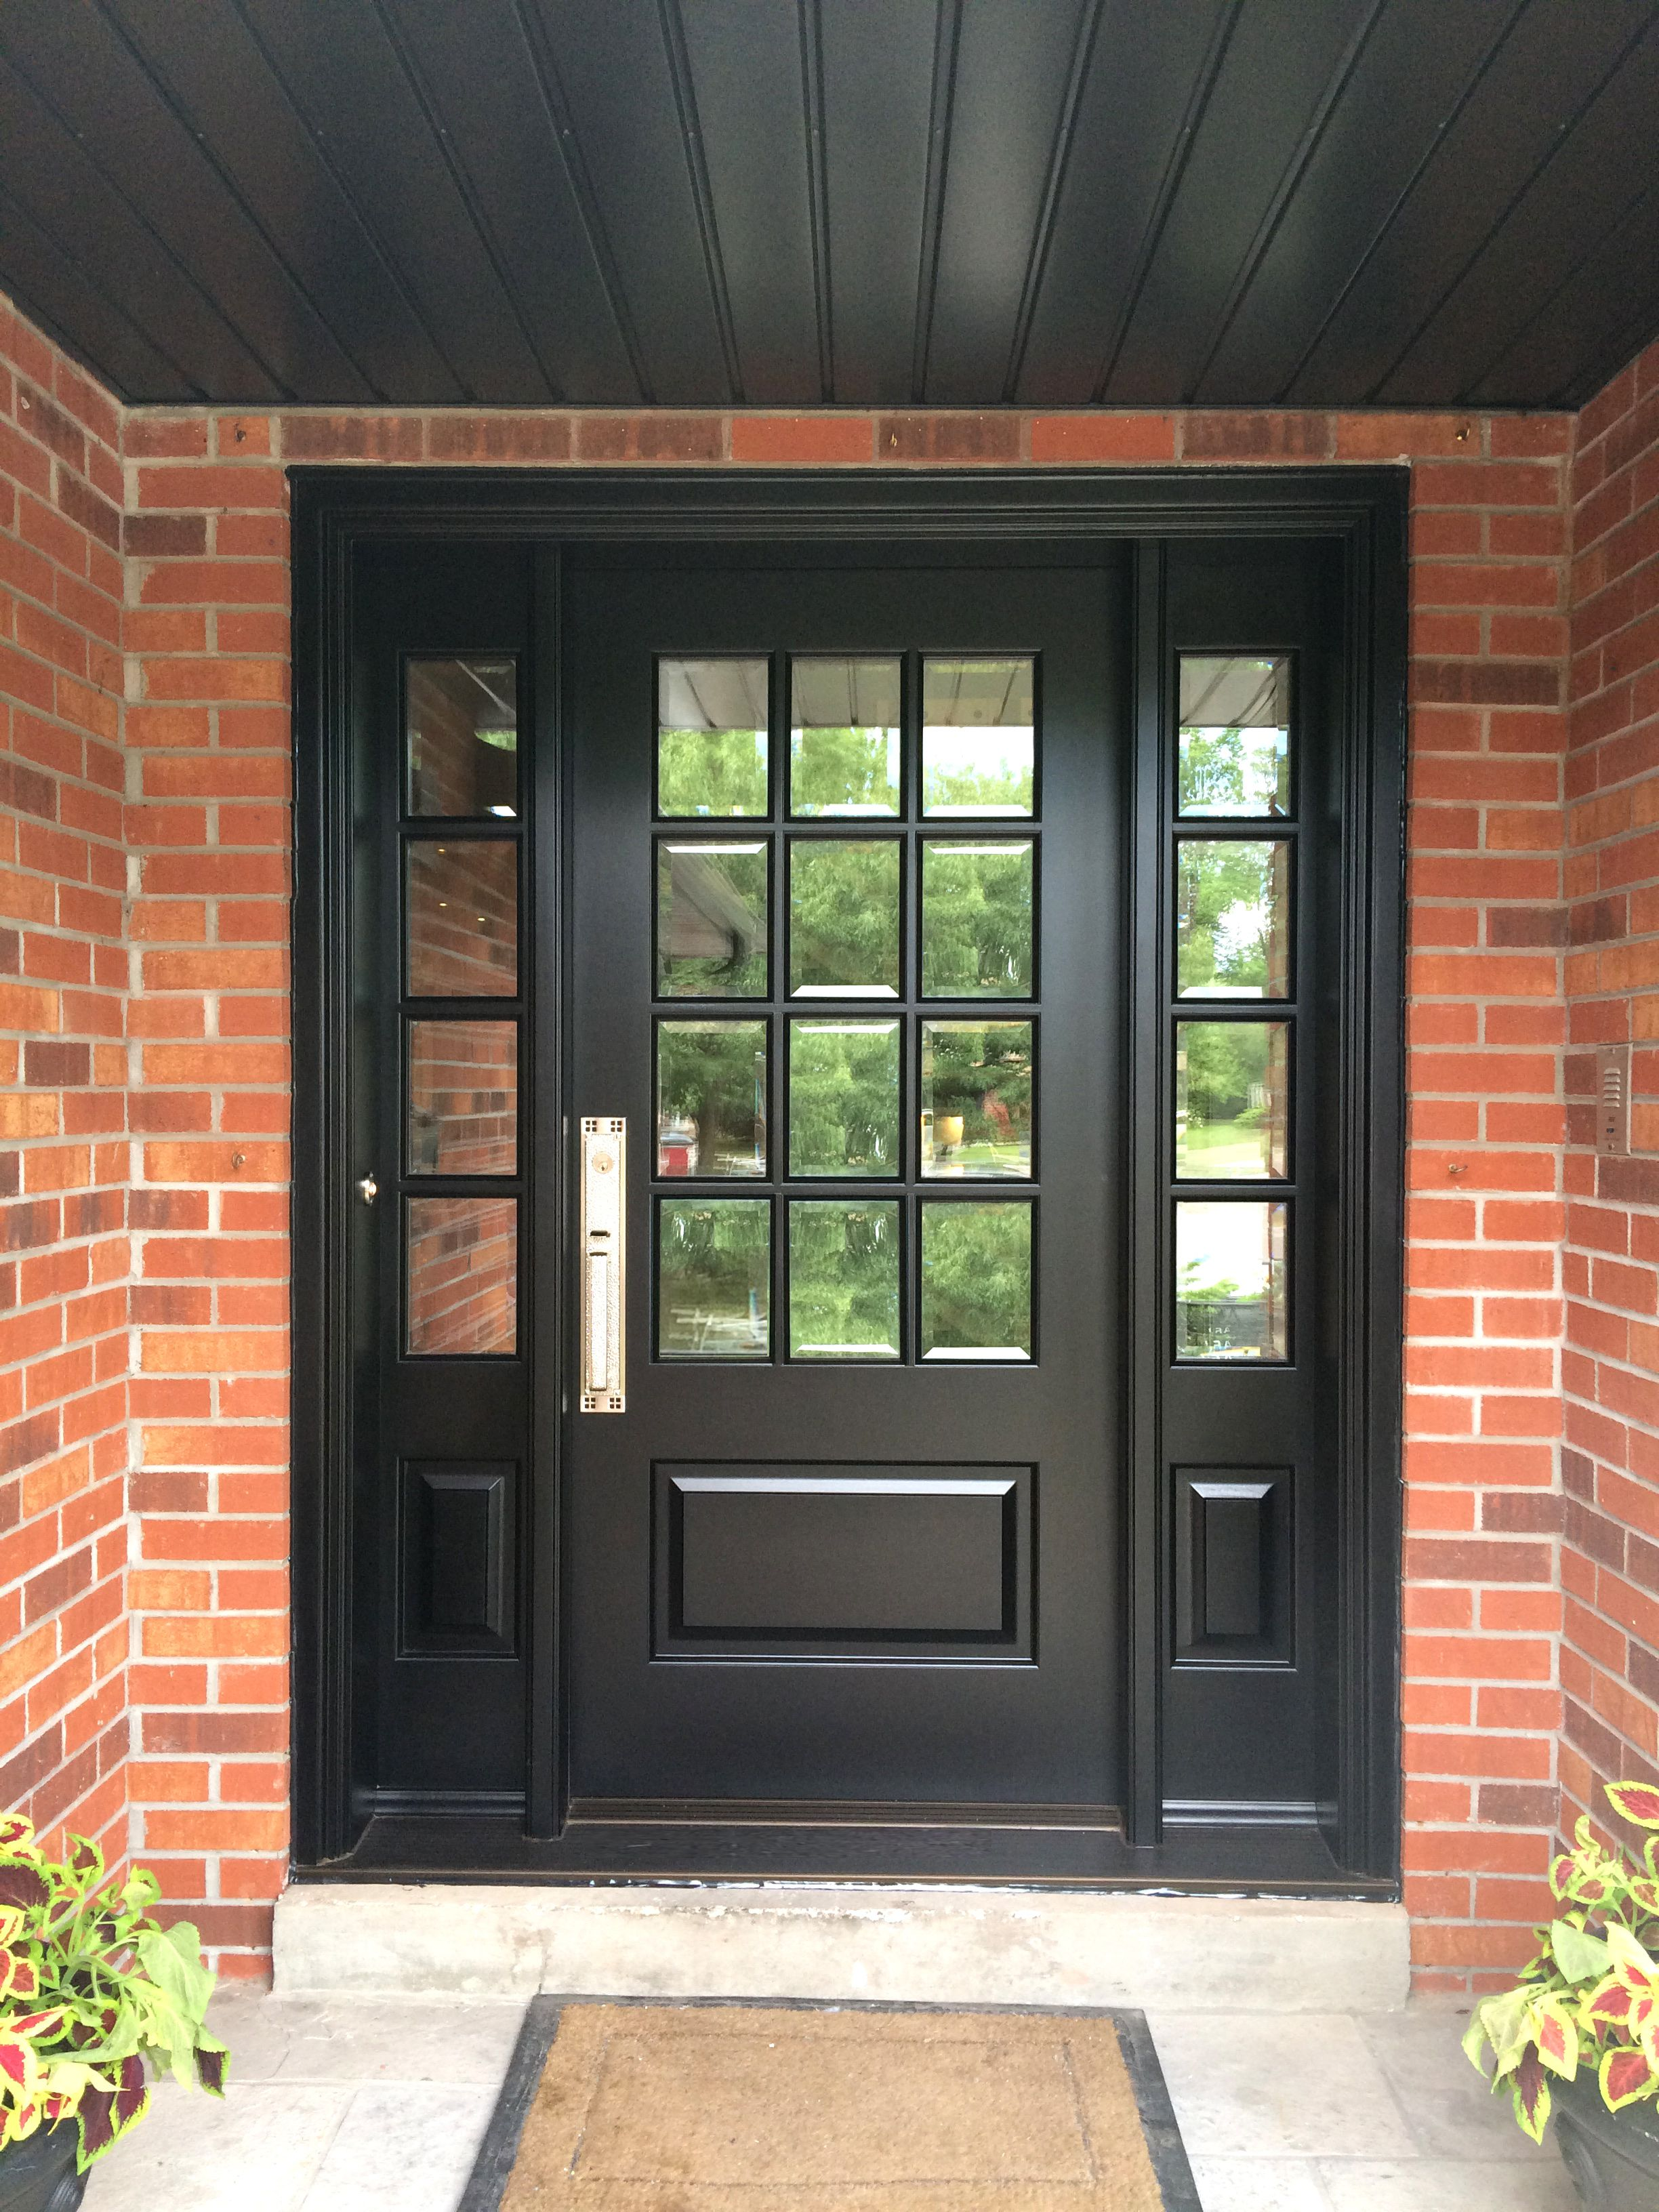 This Richly Black Stained Solid Mahogany Amberwood Custom Door With 12 Divided Lights Looks Stunnin Brick Exterior House Black Exterior Doors Exterior Doors